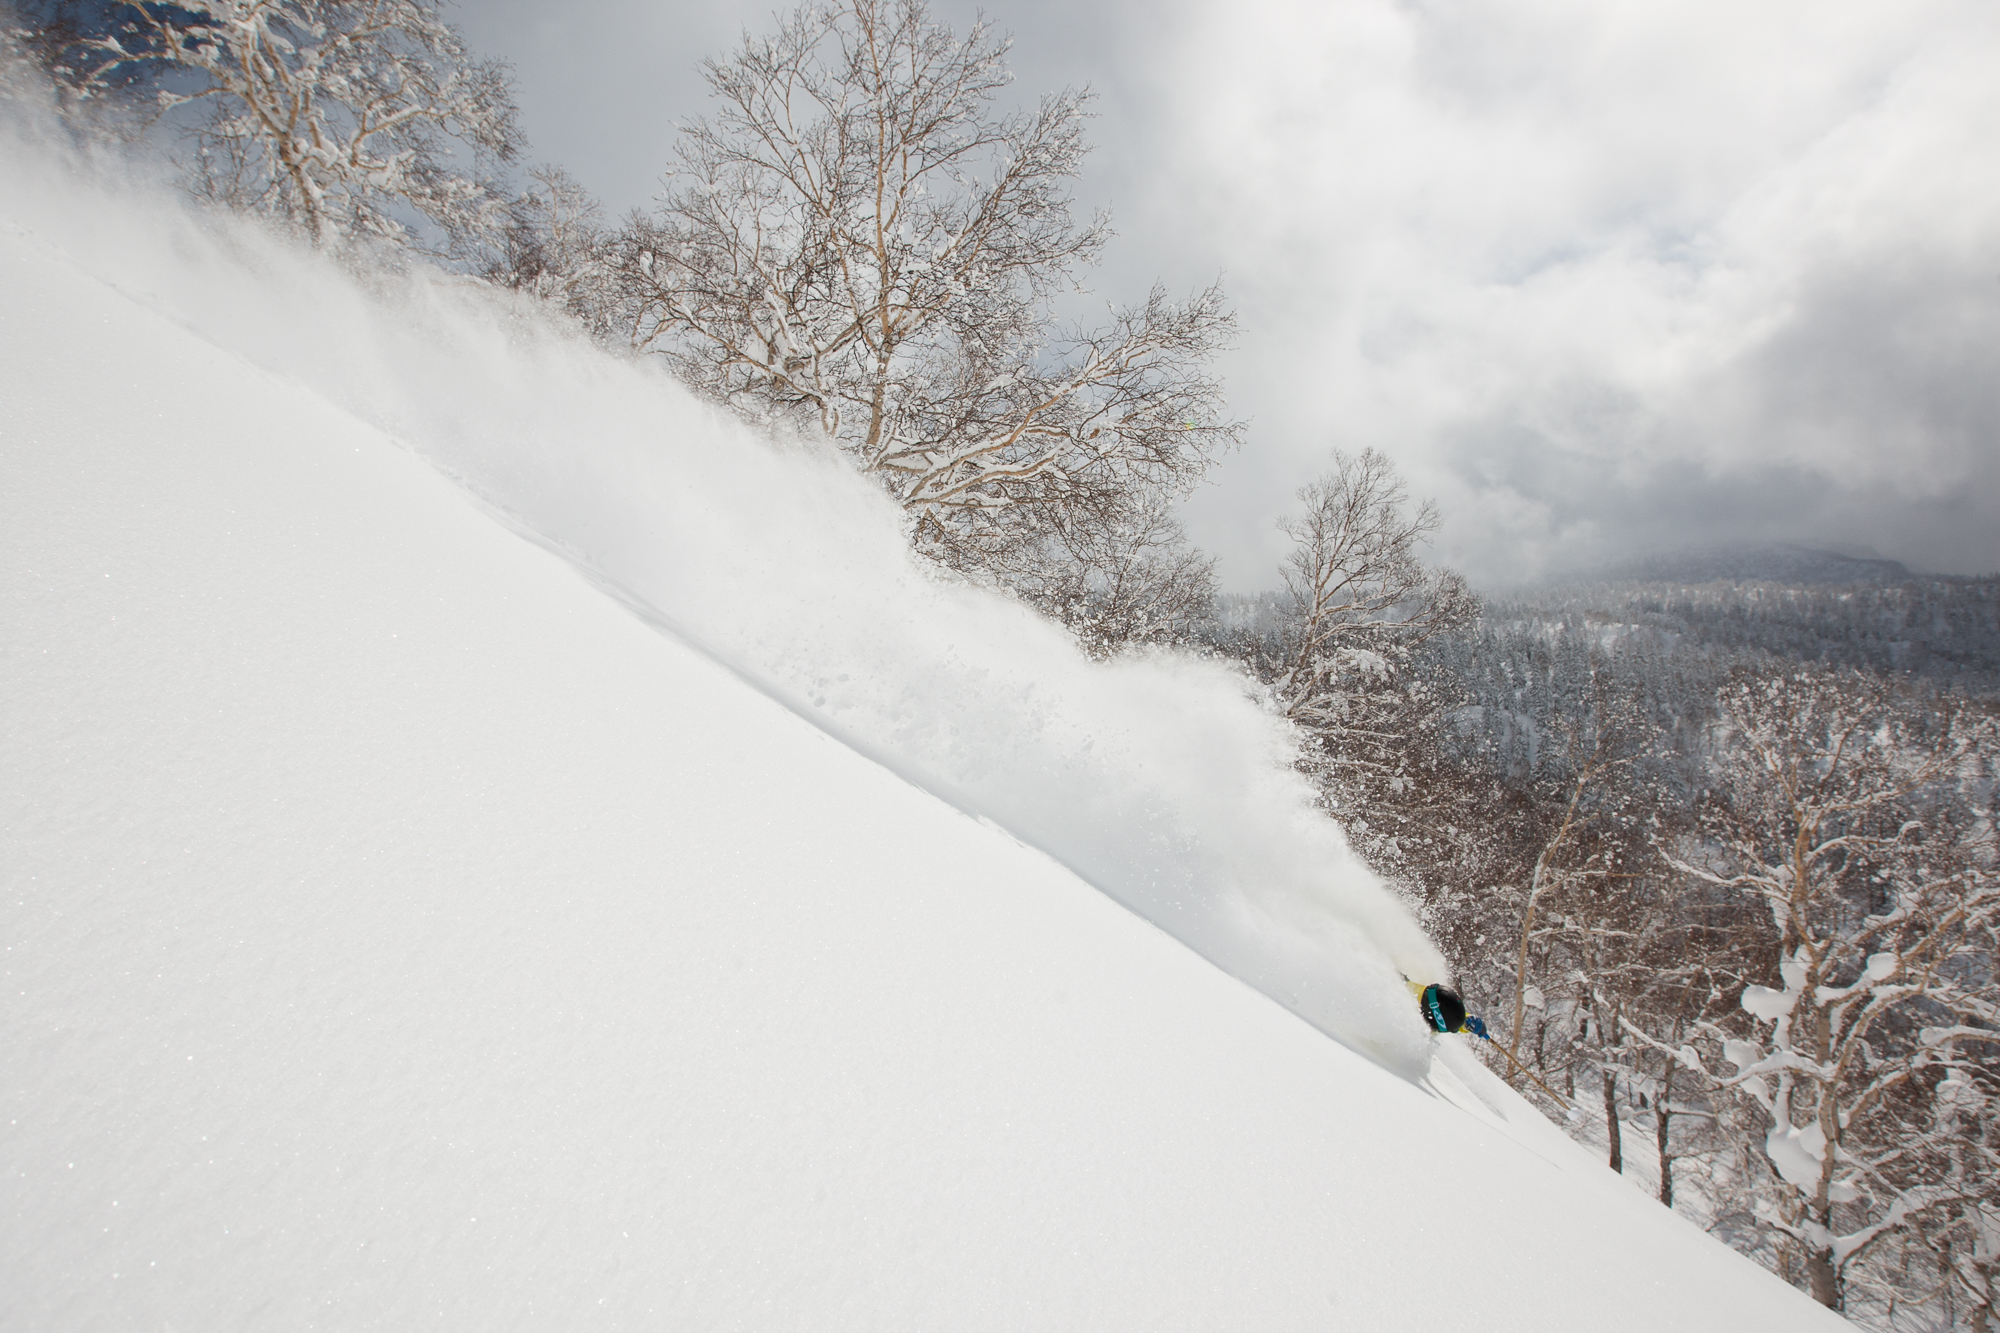 Although unaccustomed to the standard pro skier camera shredfest, Tabke seems pretty OK with photo shoots on Japan's Hokkaido Island. PHOTO: Adam Clark